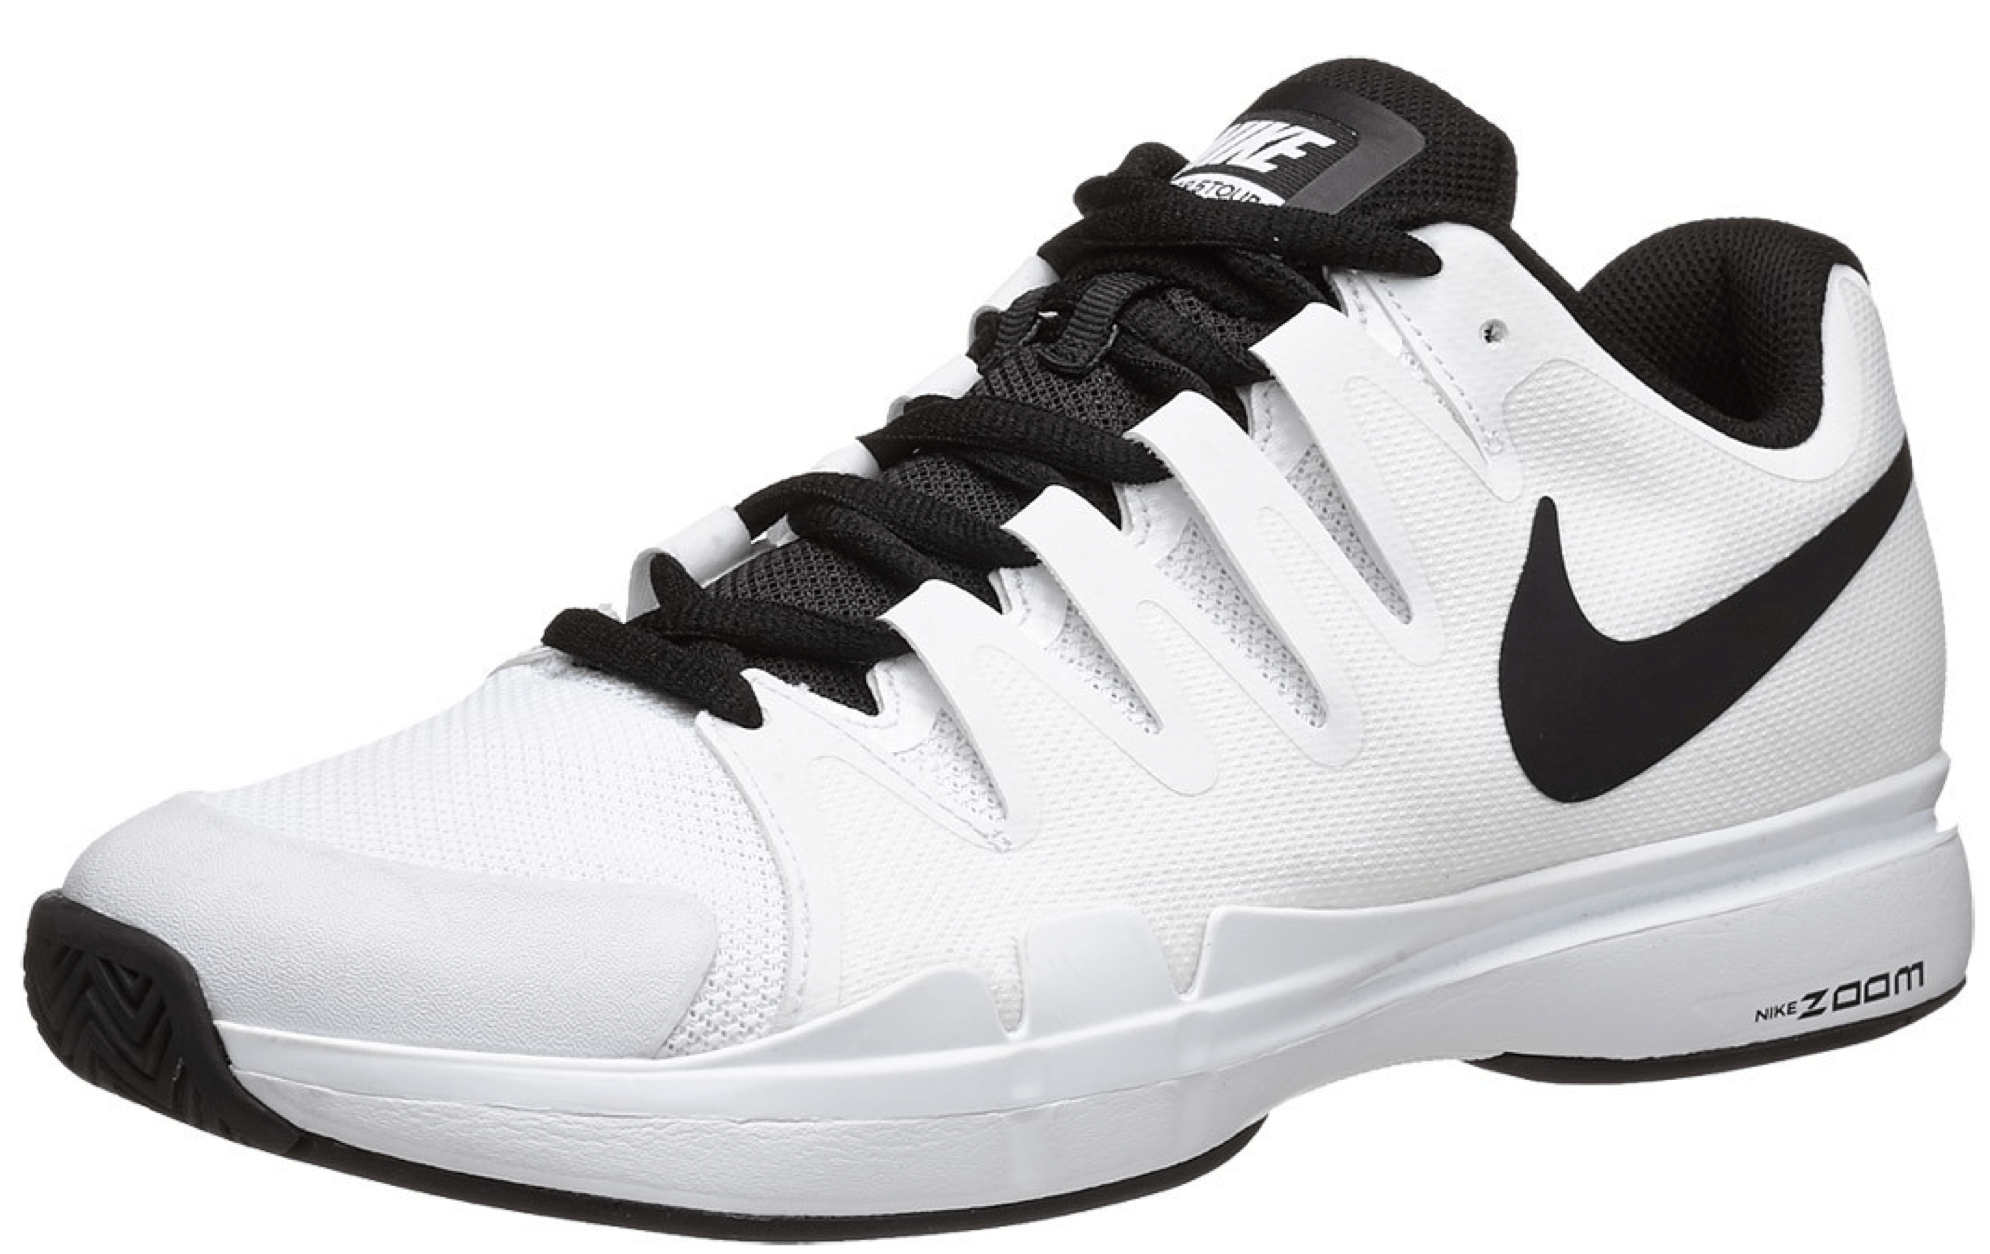 Roger Federer Wimbledon 2015 Nike Outfit